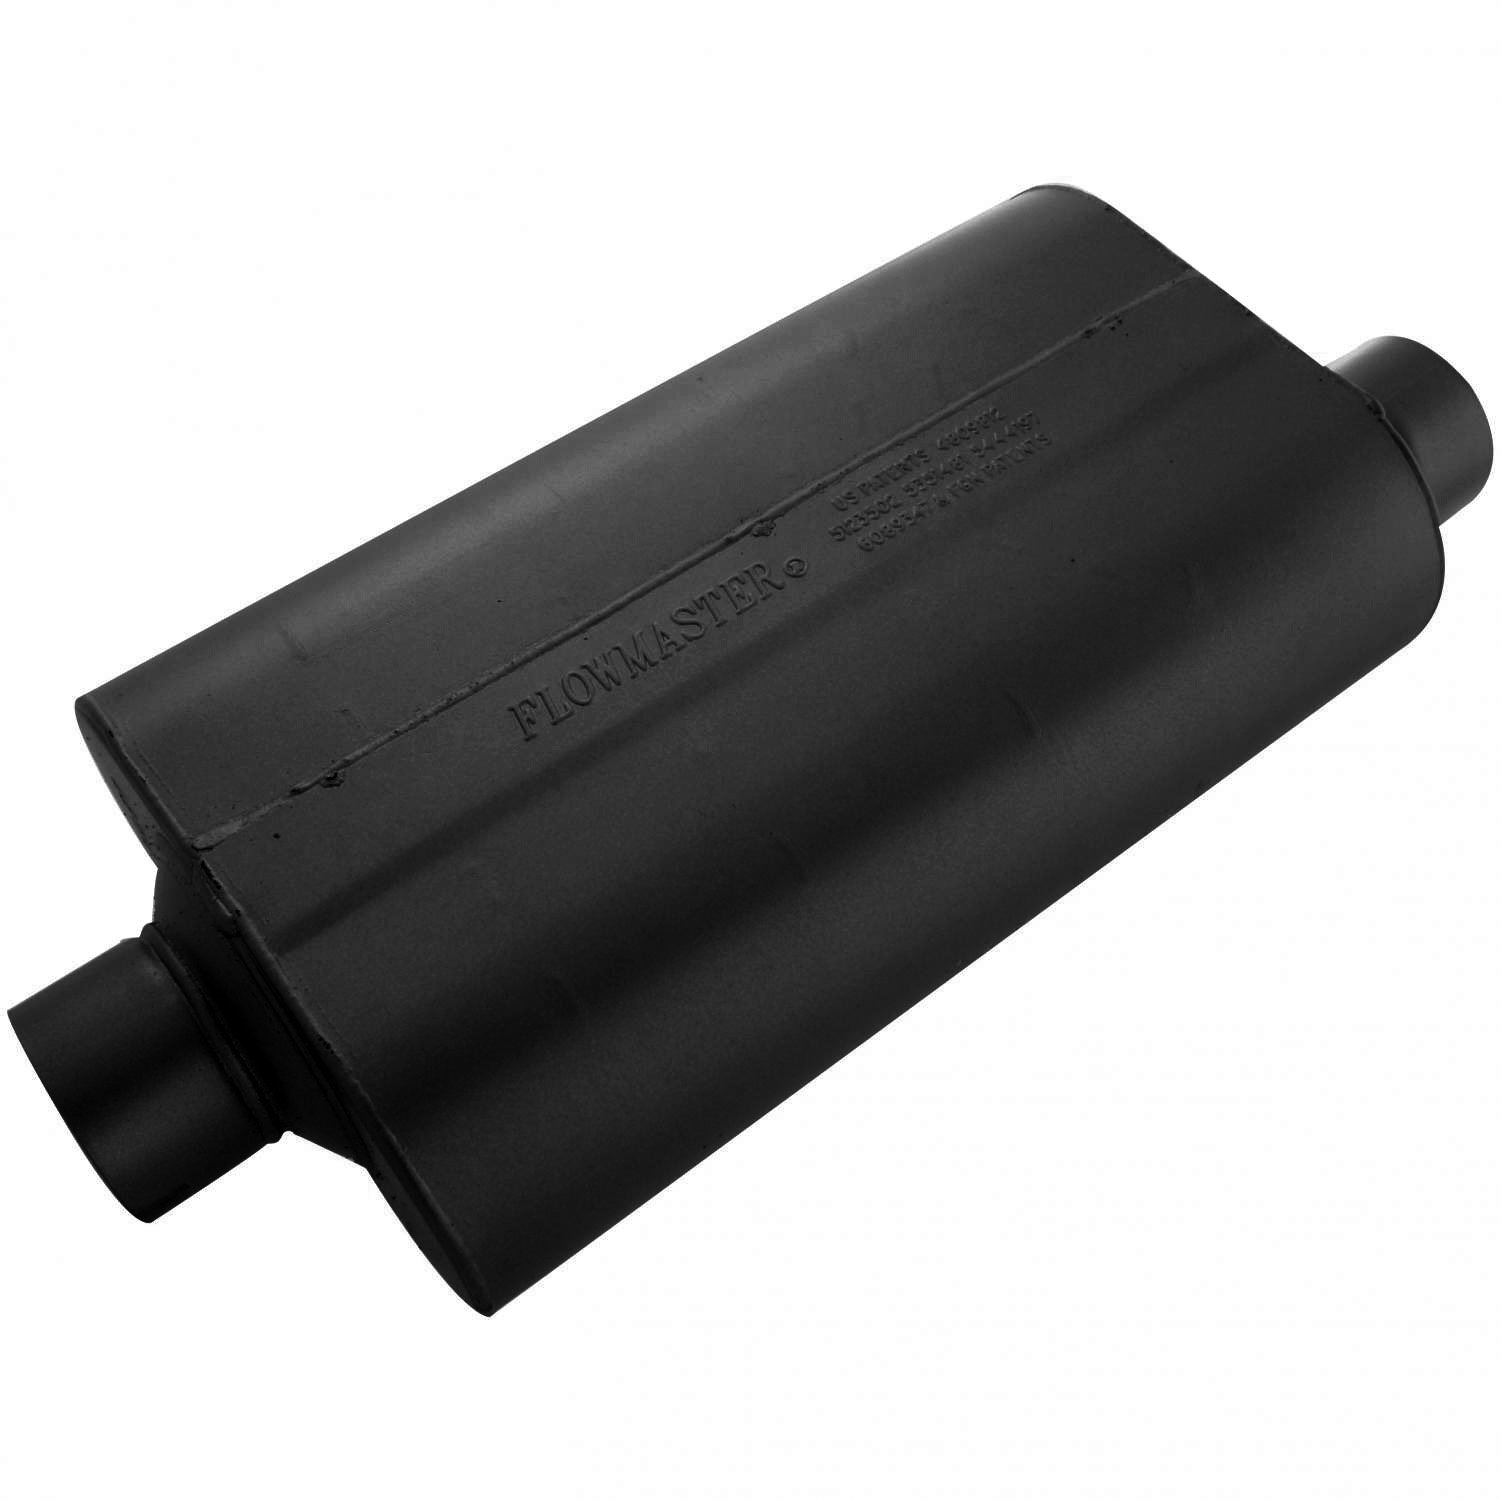 Flowmaster 53057 Super 50 Muffler - 3.00 Center IN / 3.00 Offset OUT - Moderate Sound by Flowmaster